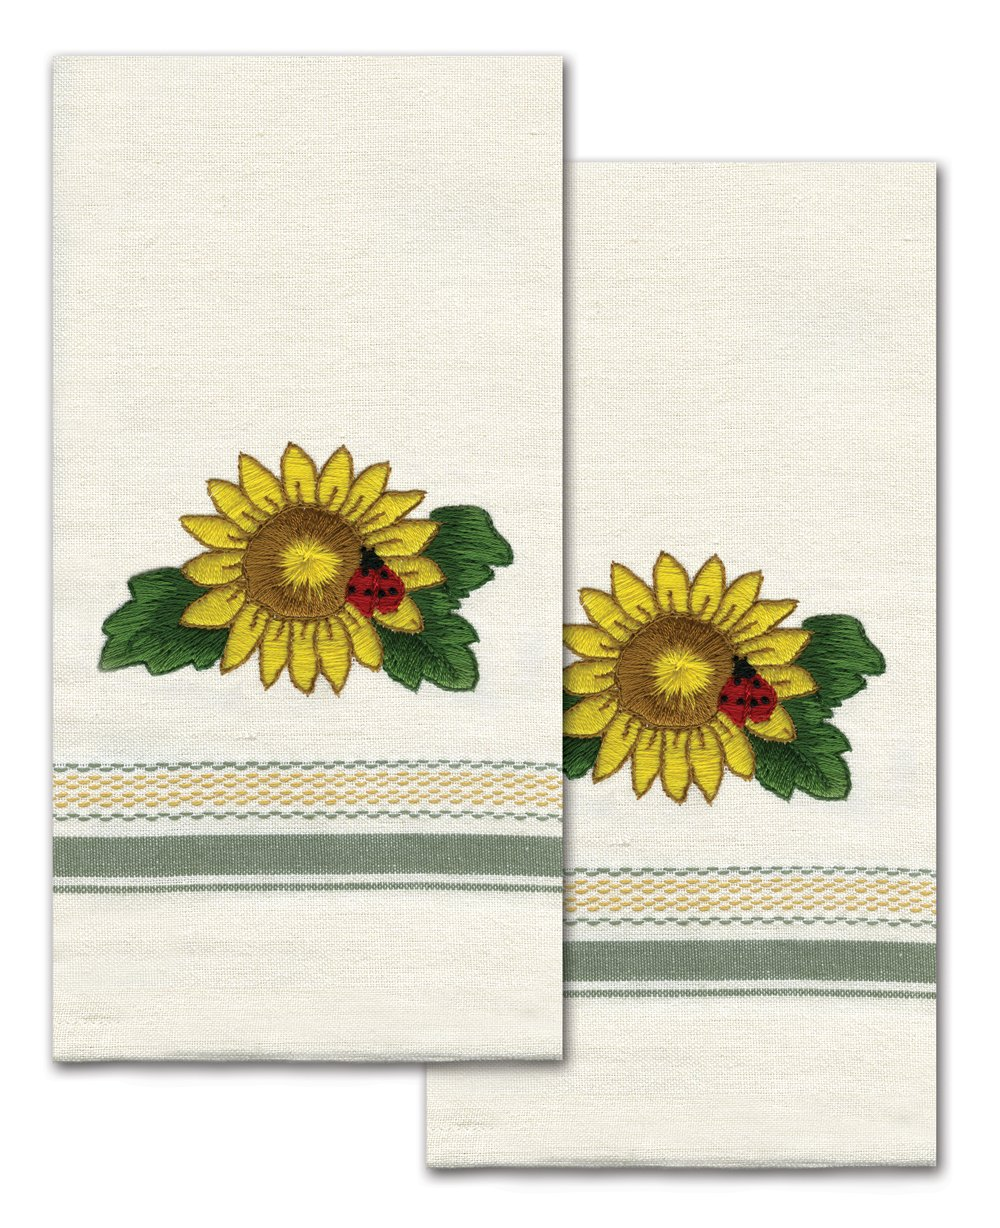 Tobin T212940 Stamped Kitchen Towel for Embroidery, Sunflower